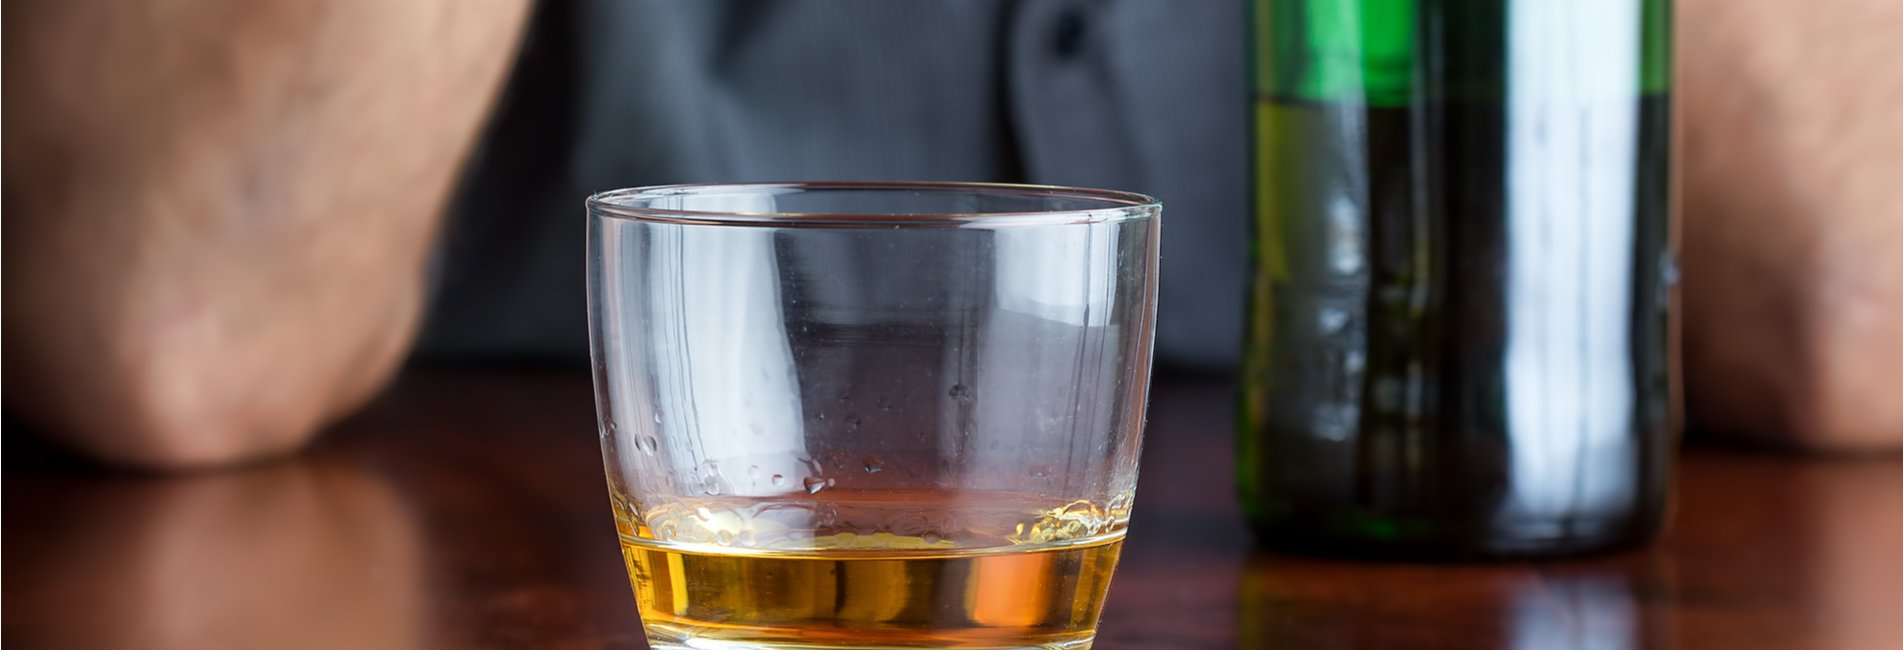 Blurred Lines Alcohol Abuse or Addiction Resurgence – A man with a bottle and glass of whiskey. It's important to understand the spectrum alcohol abuse falls along and get help when it's needed.